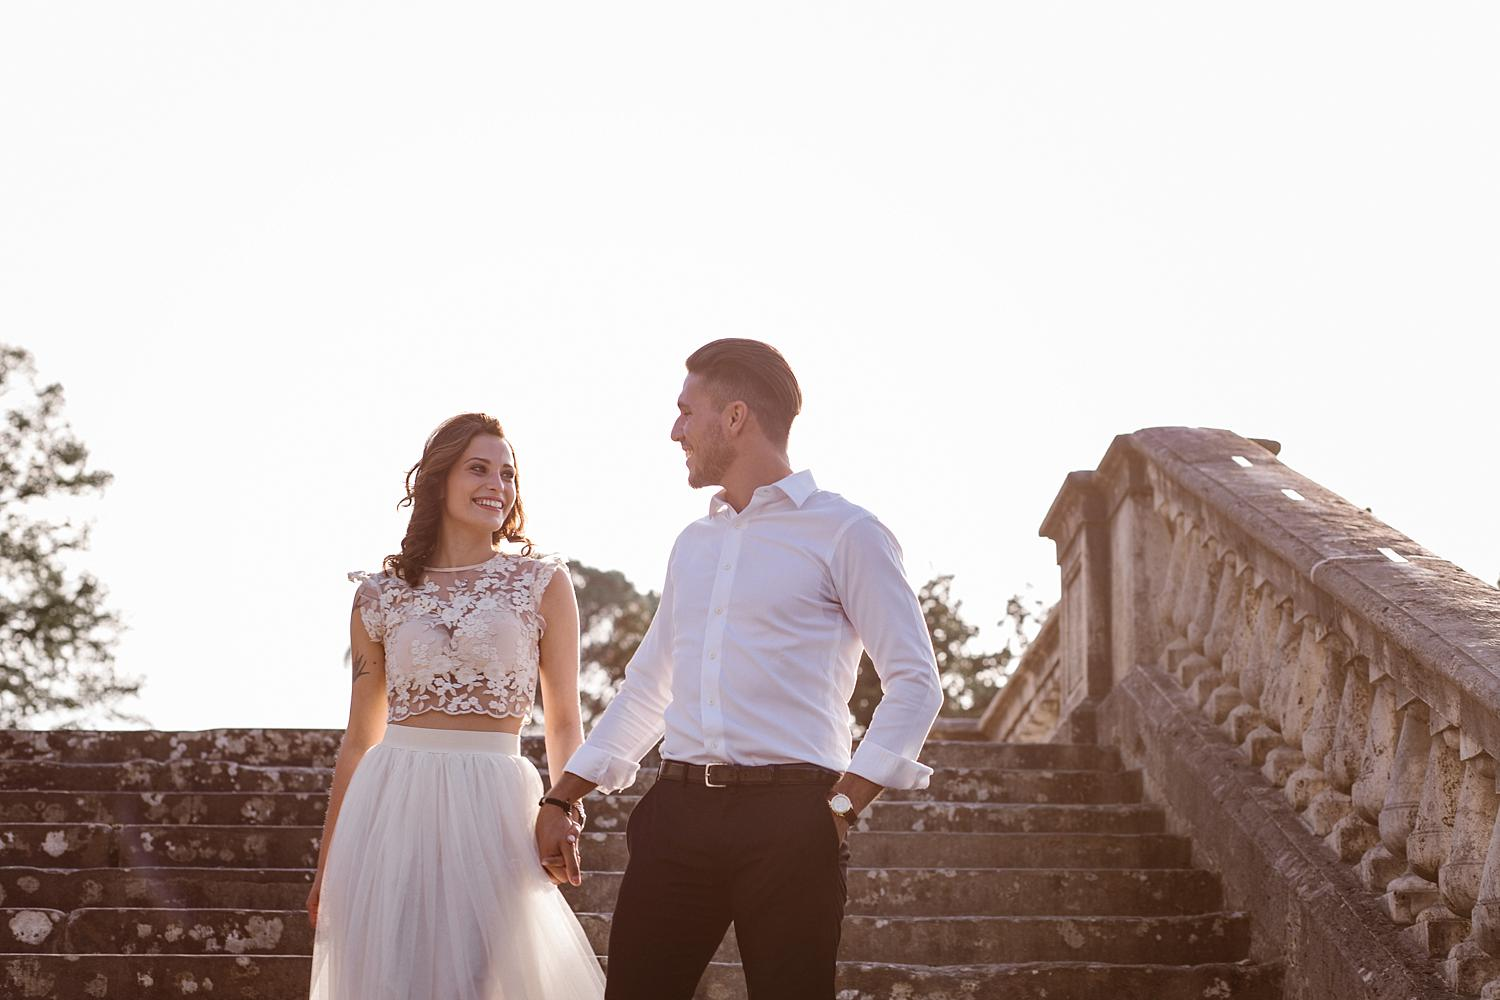 weddingphotographer florence 40 - Maddalena & Arturo - A Chic Anniversary Session in Florence